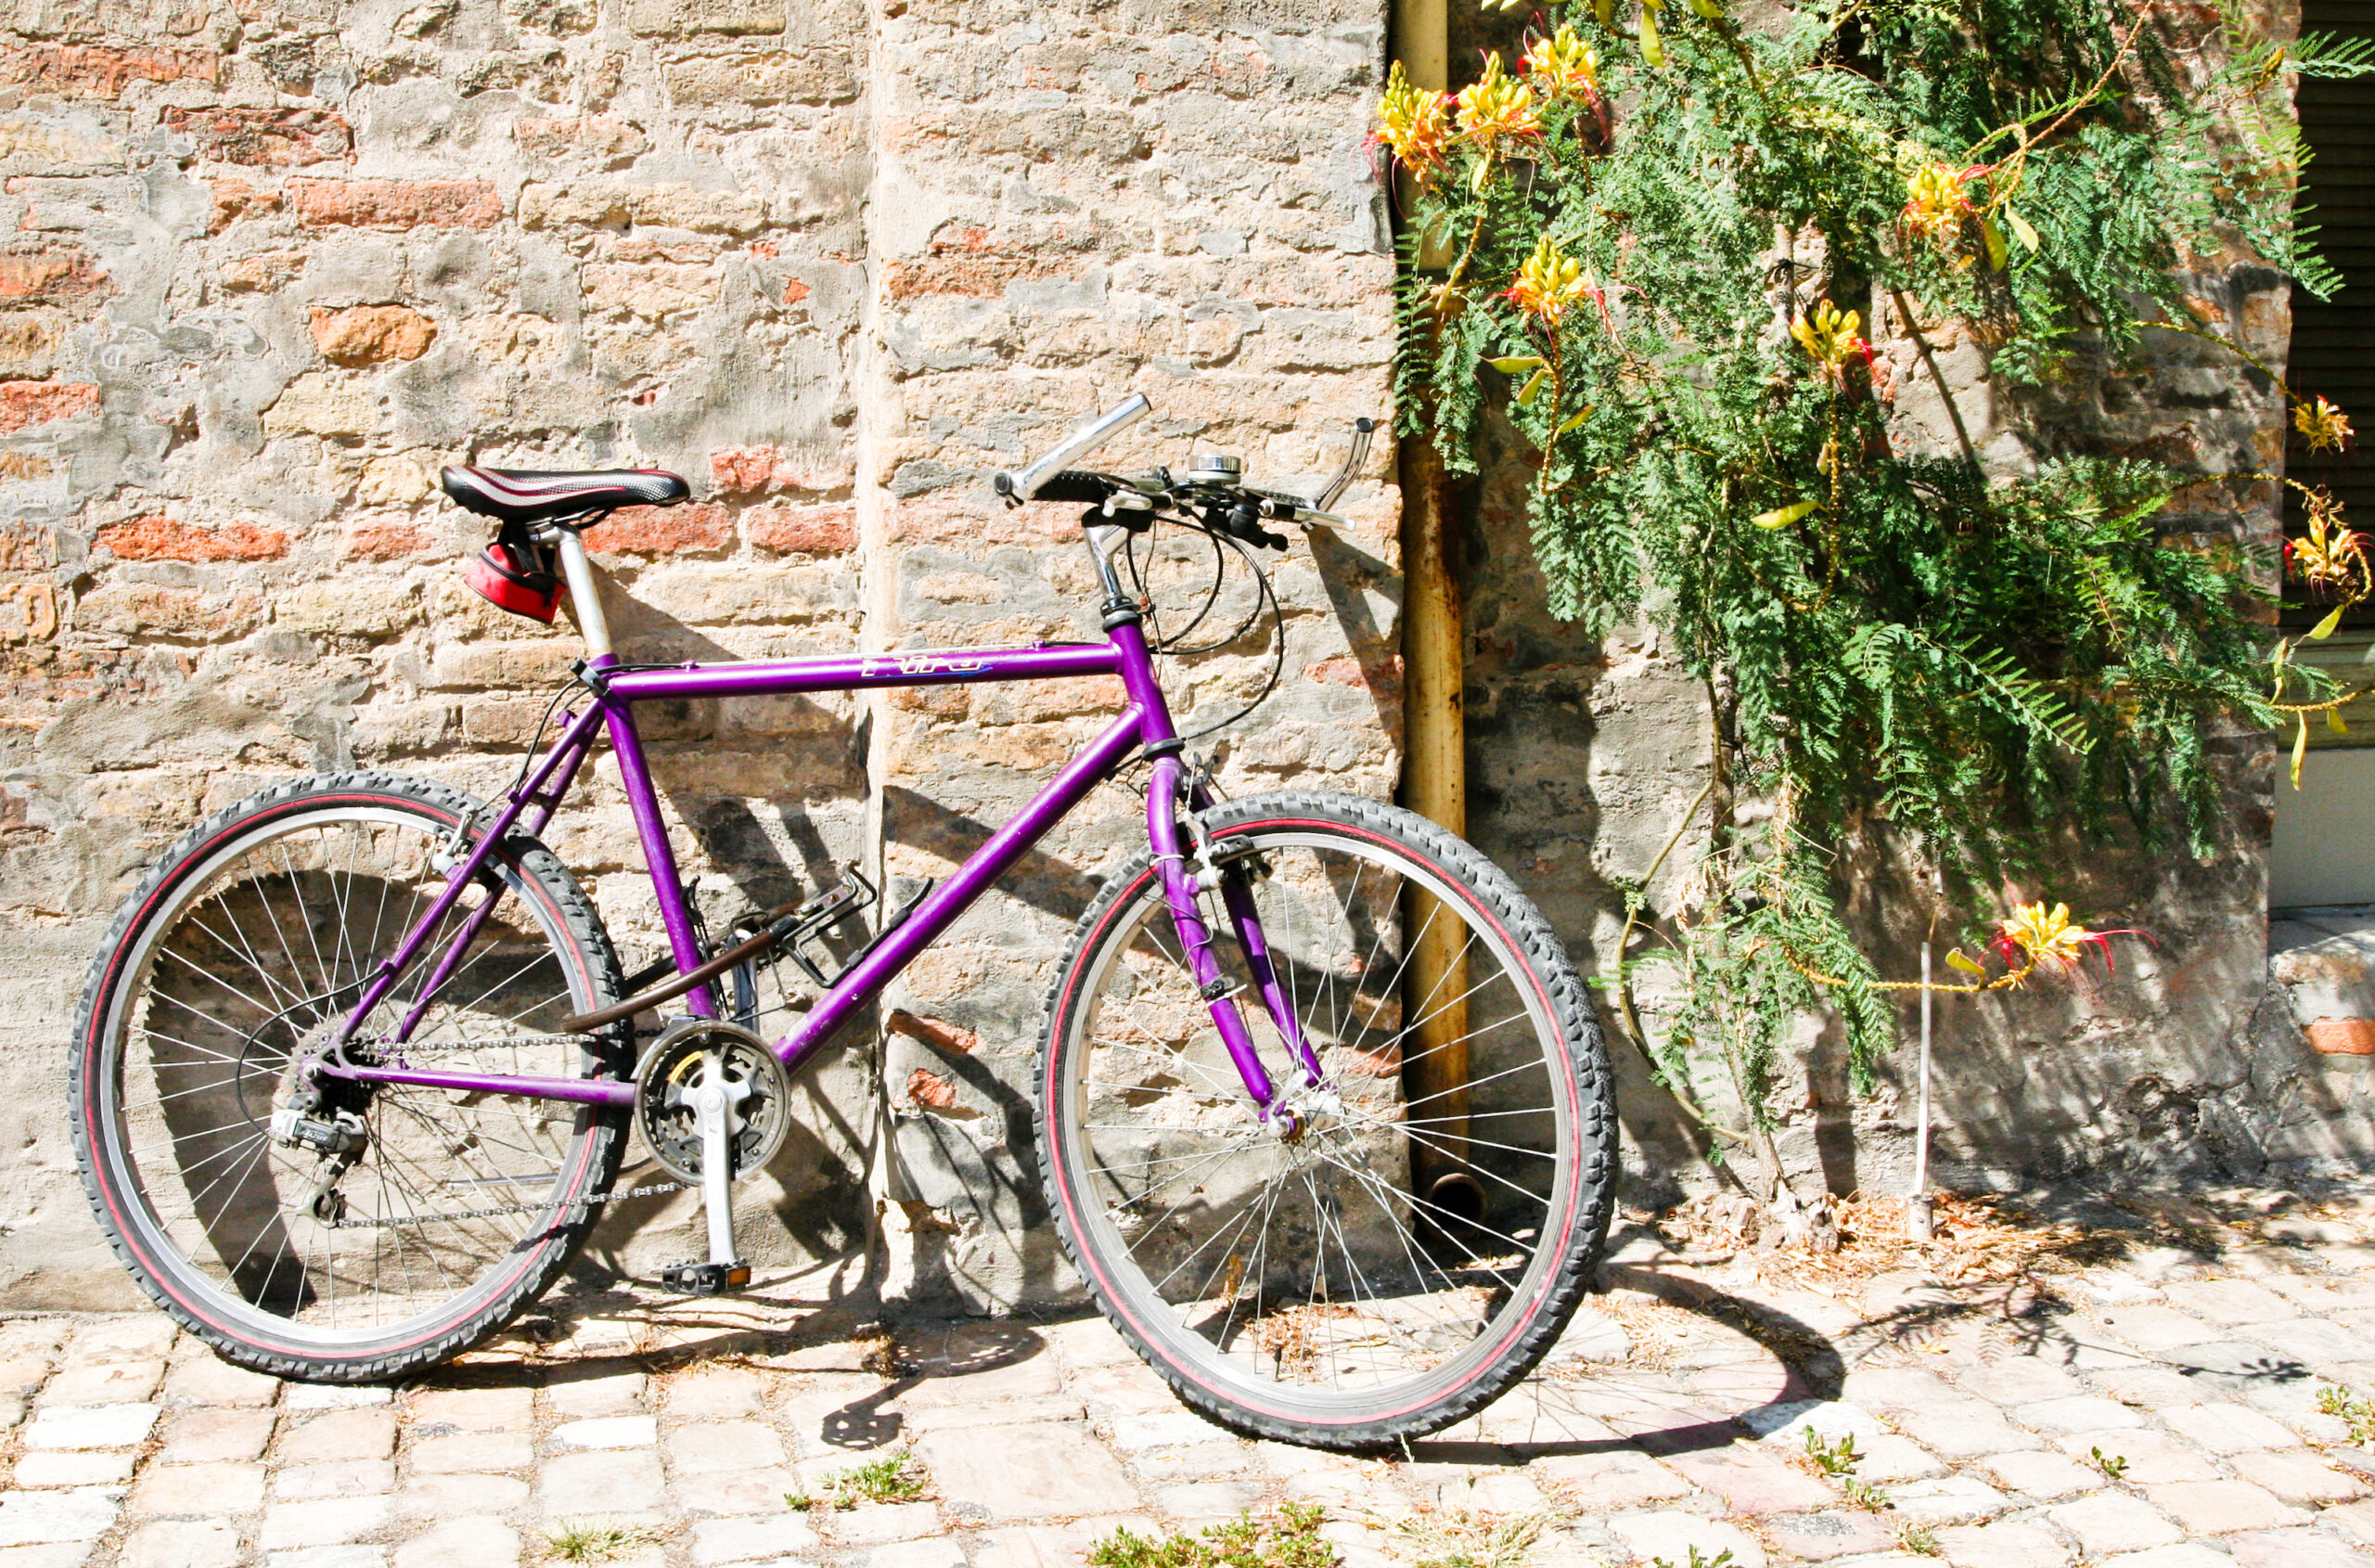 Bicycles in Ravenna, Flickr images reviewed by FlickreviewR 2